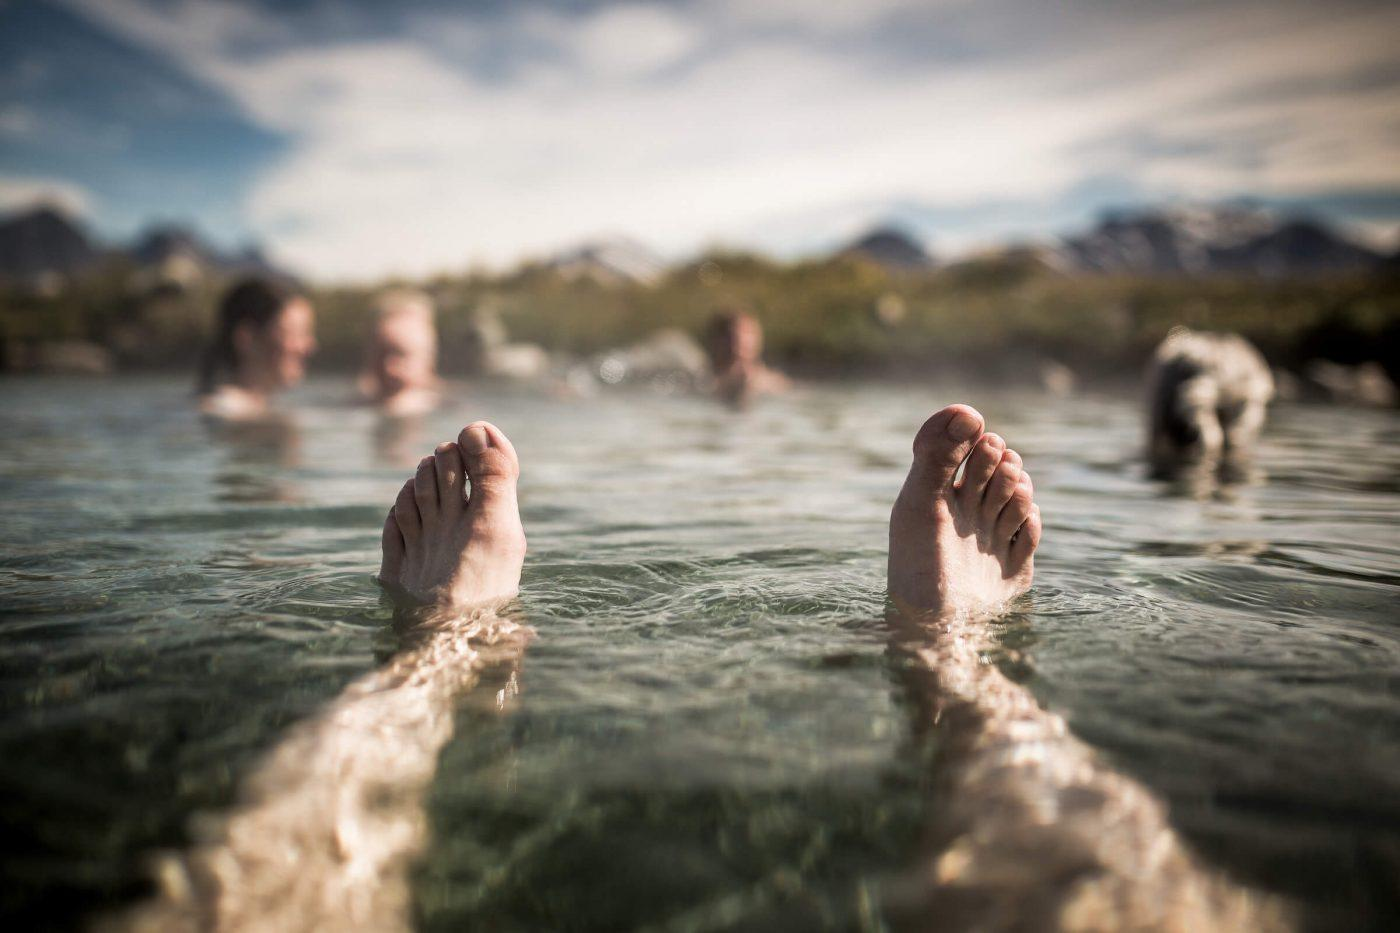 With the feet up and enjoying the hot springs at Uunartoq in South Greenland. By Mads Pihl